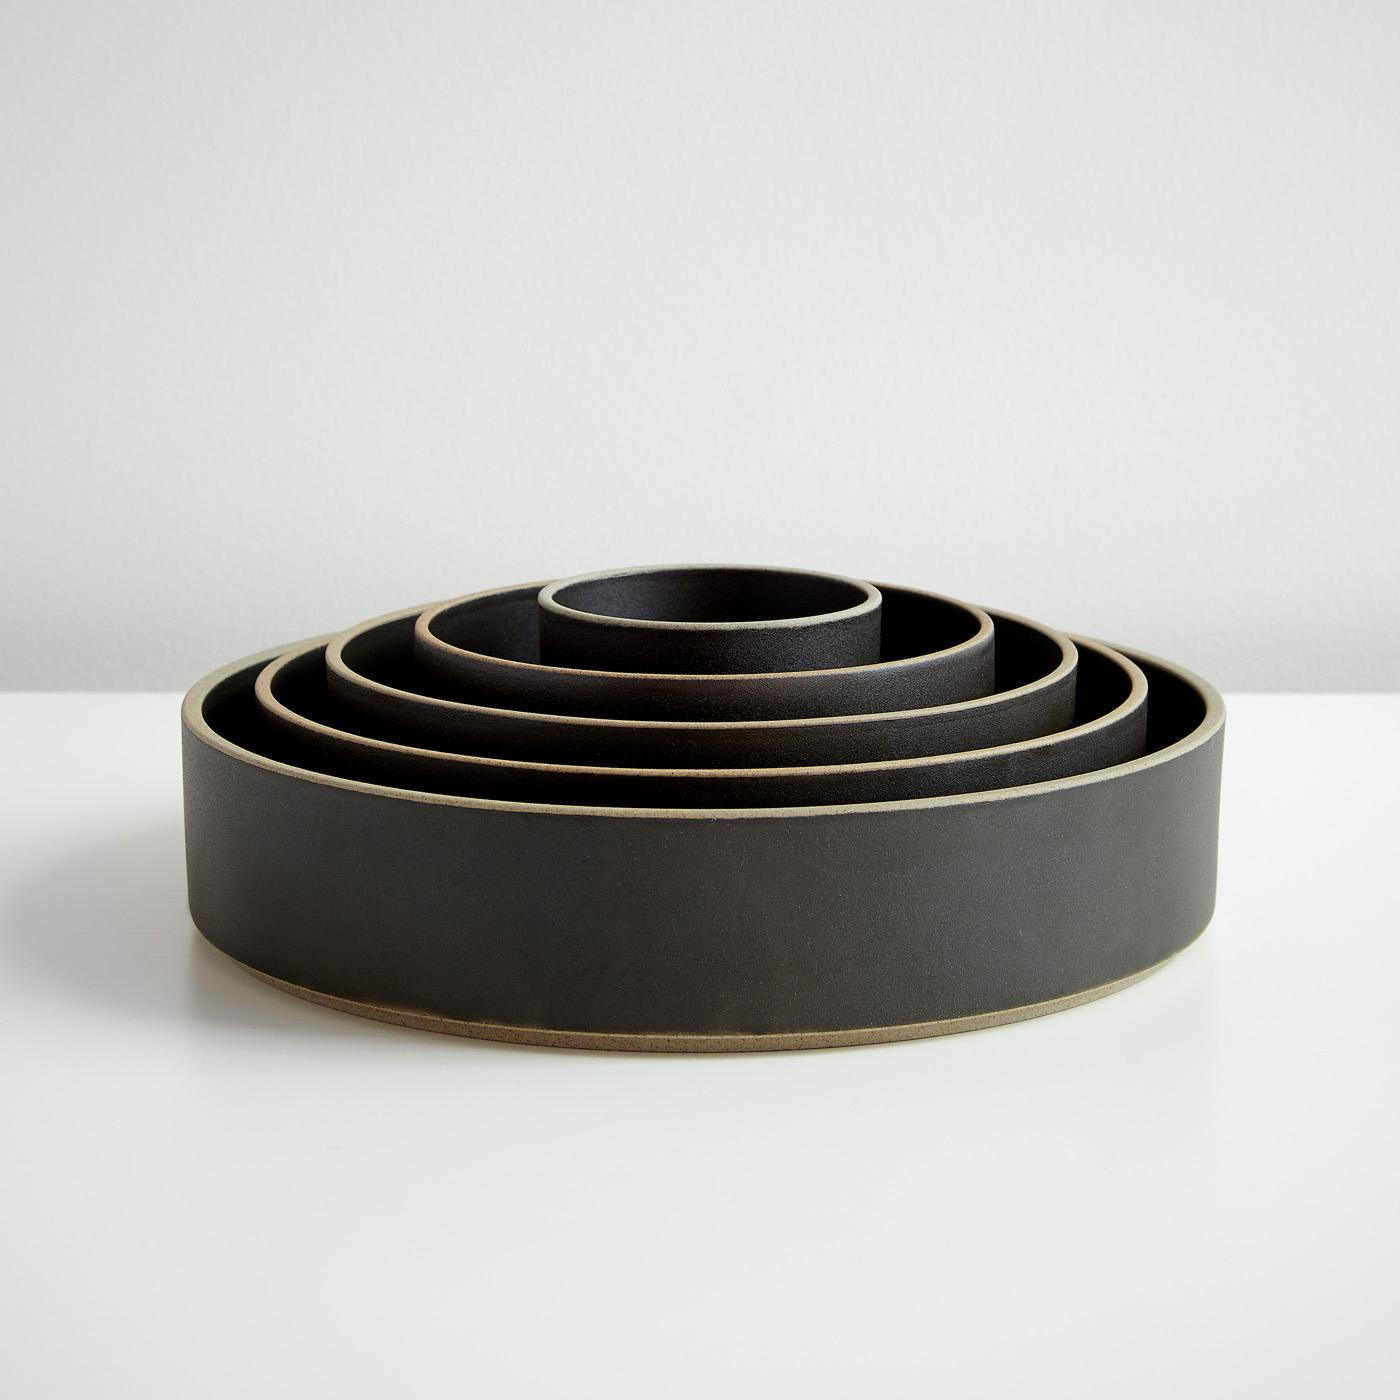 Hasami Black Bowl Set of 5